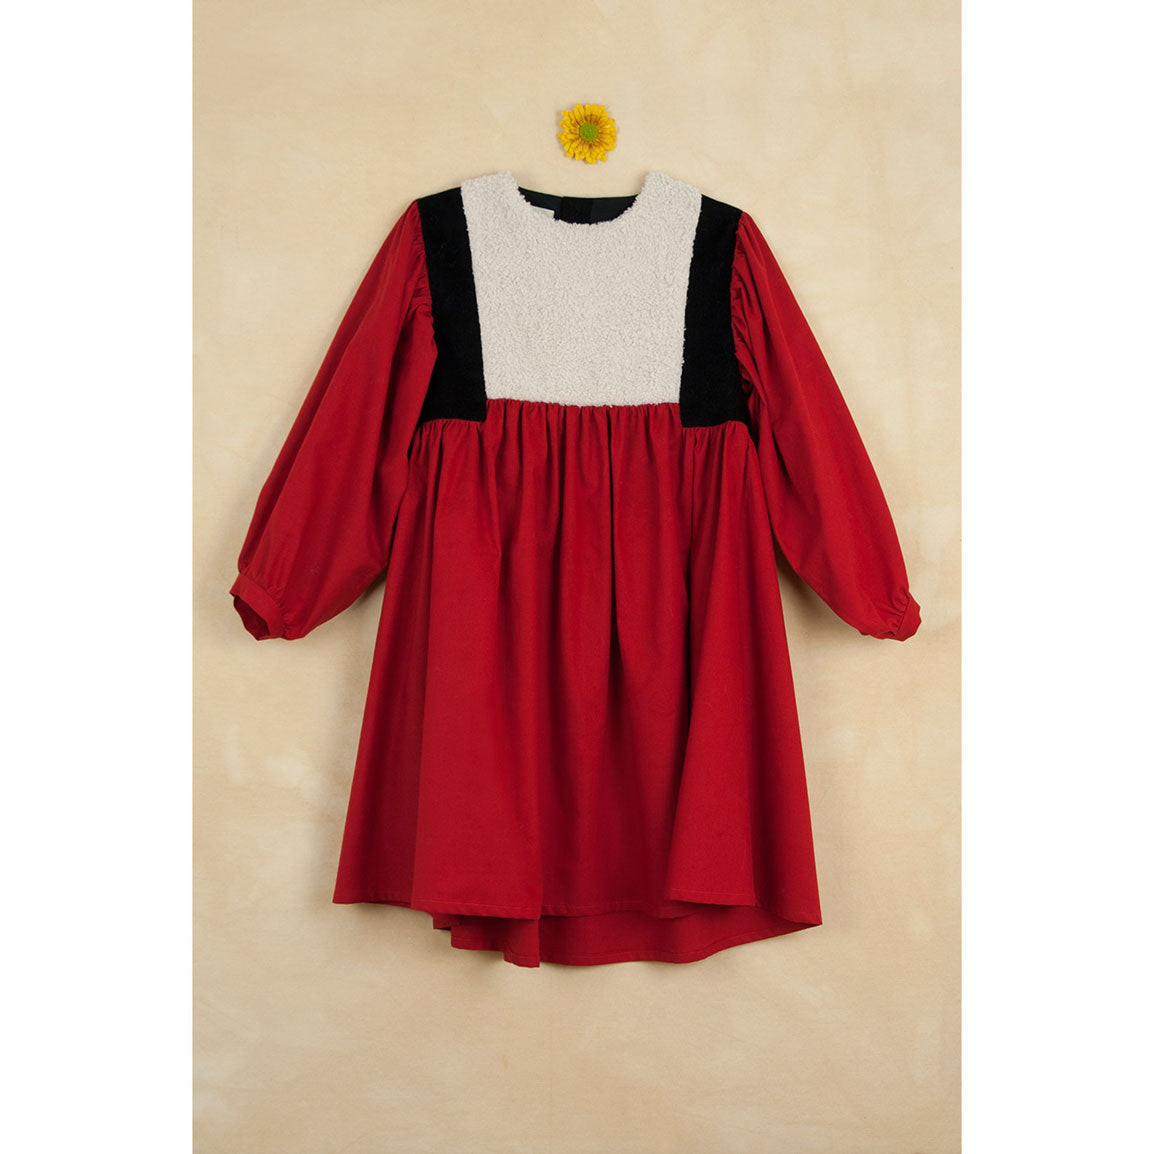 350959c0a2 Popelin Red Waistcoat Dress